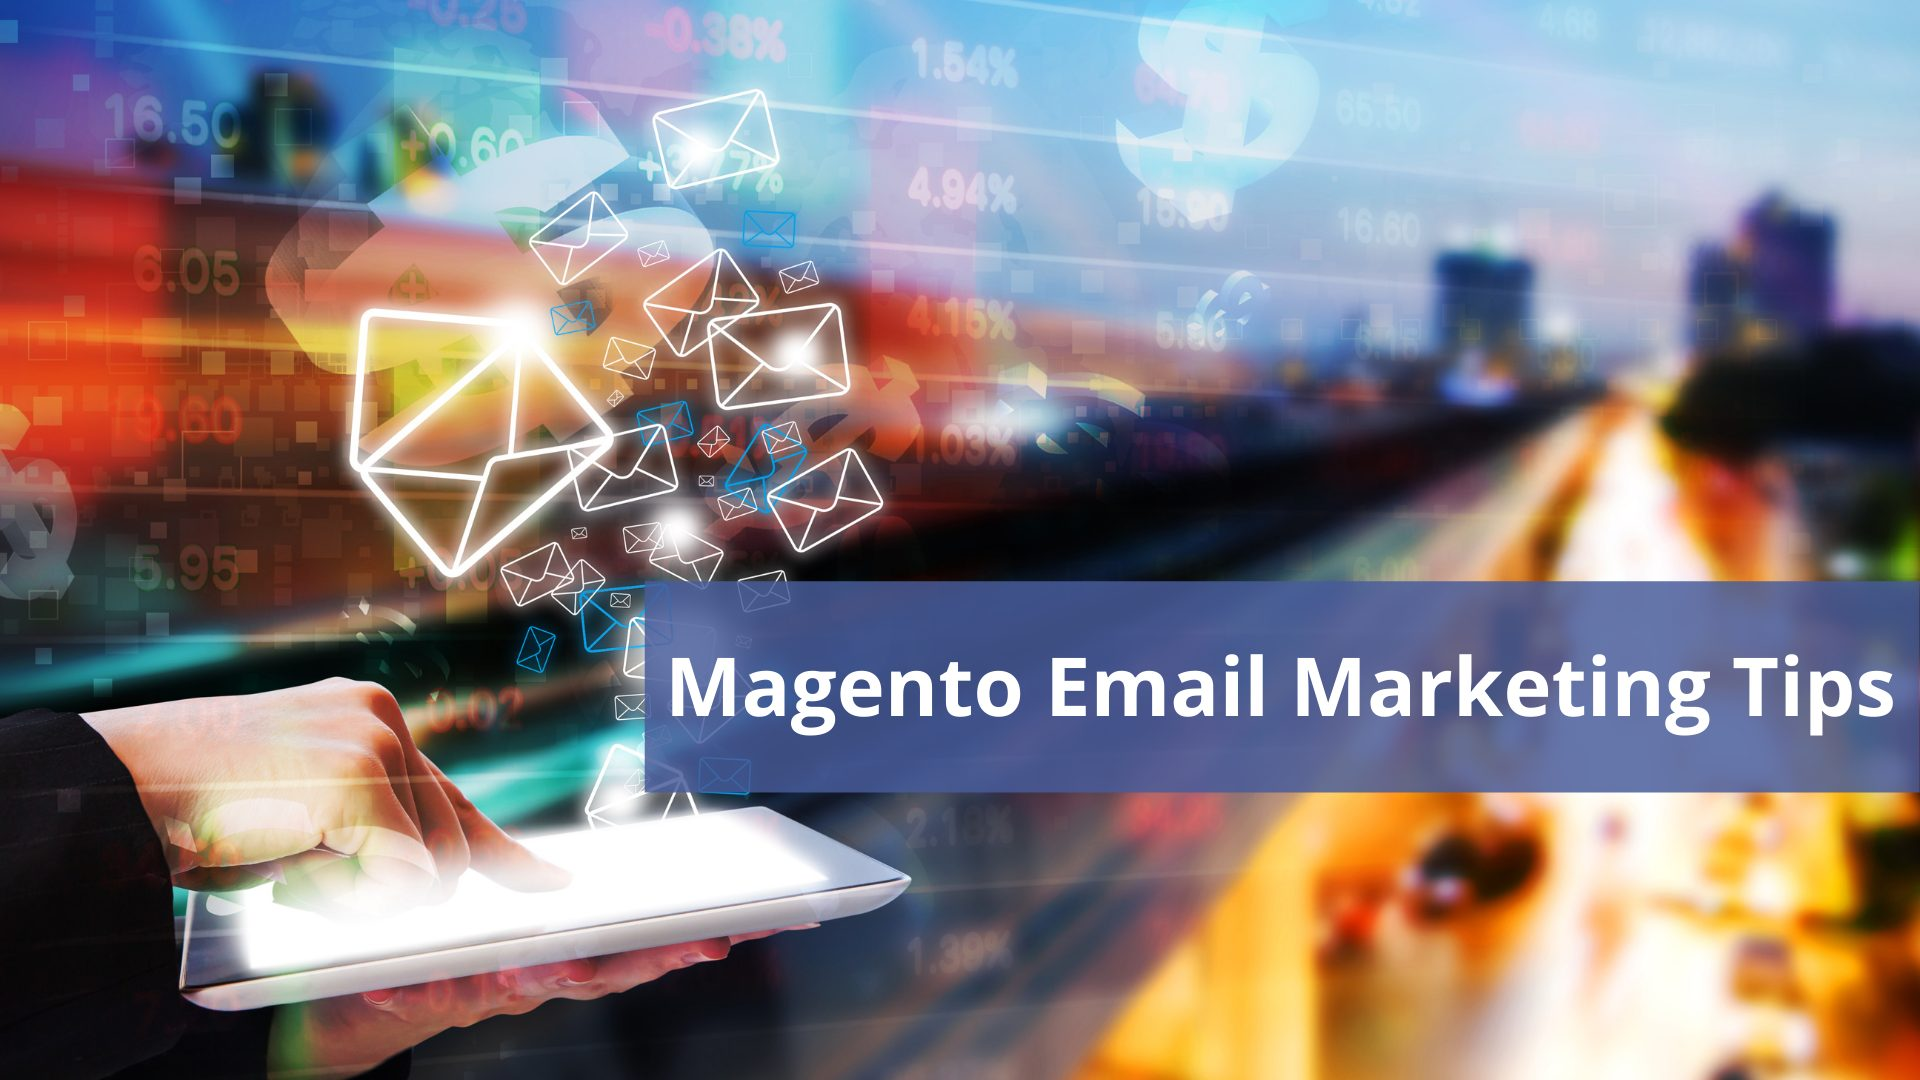 Effective Magento Email Marketing Tips to Launch a Successful Campaign